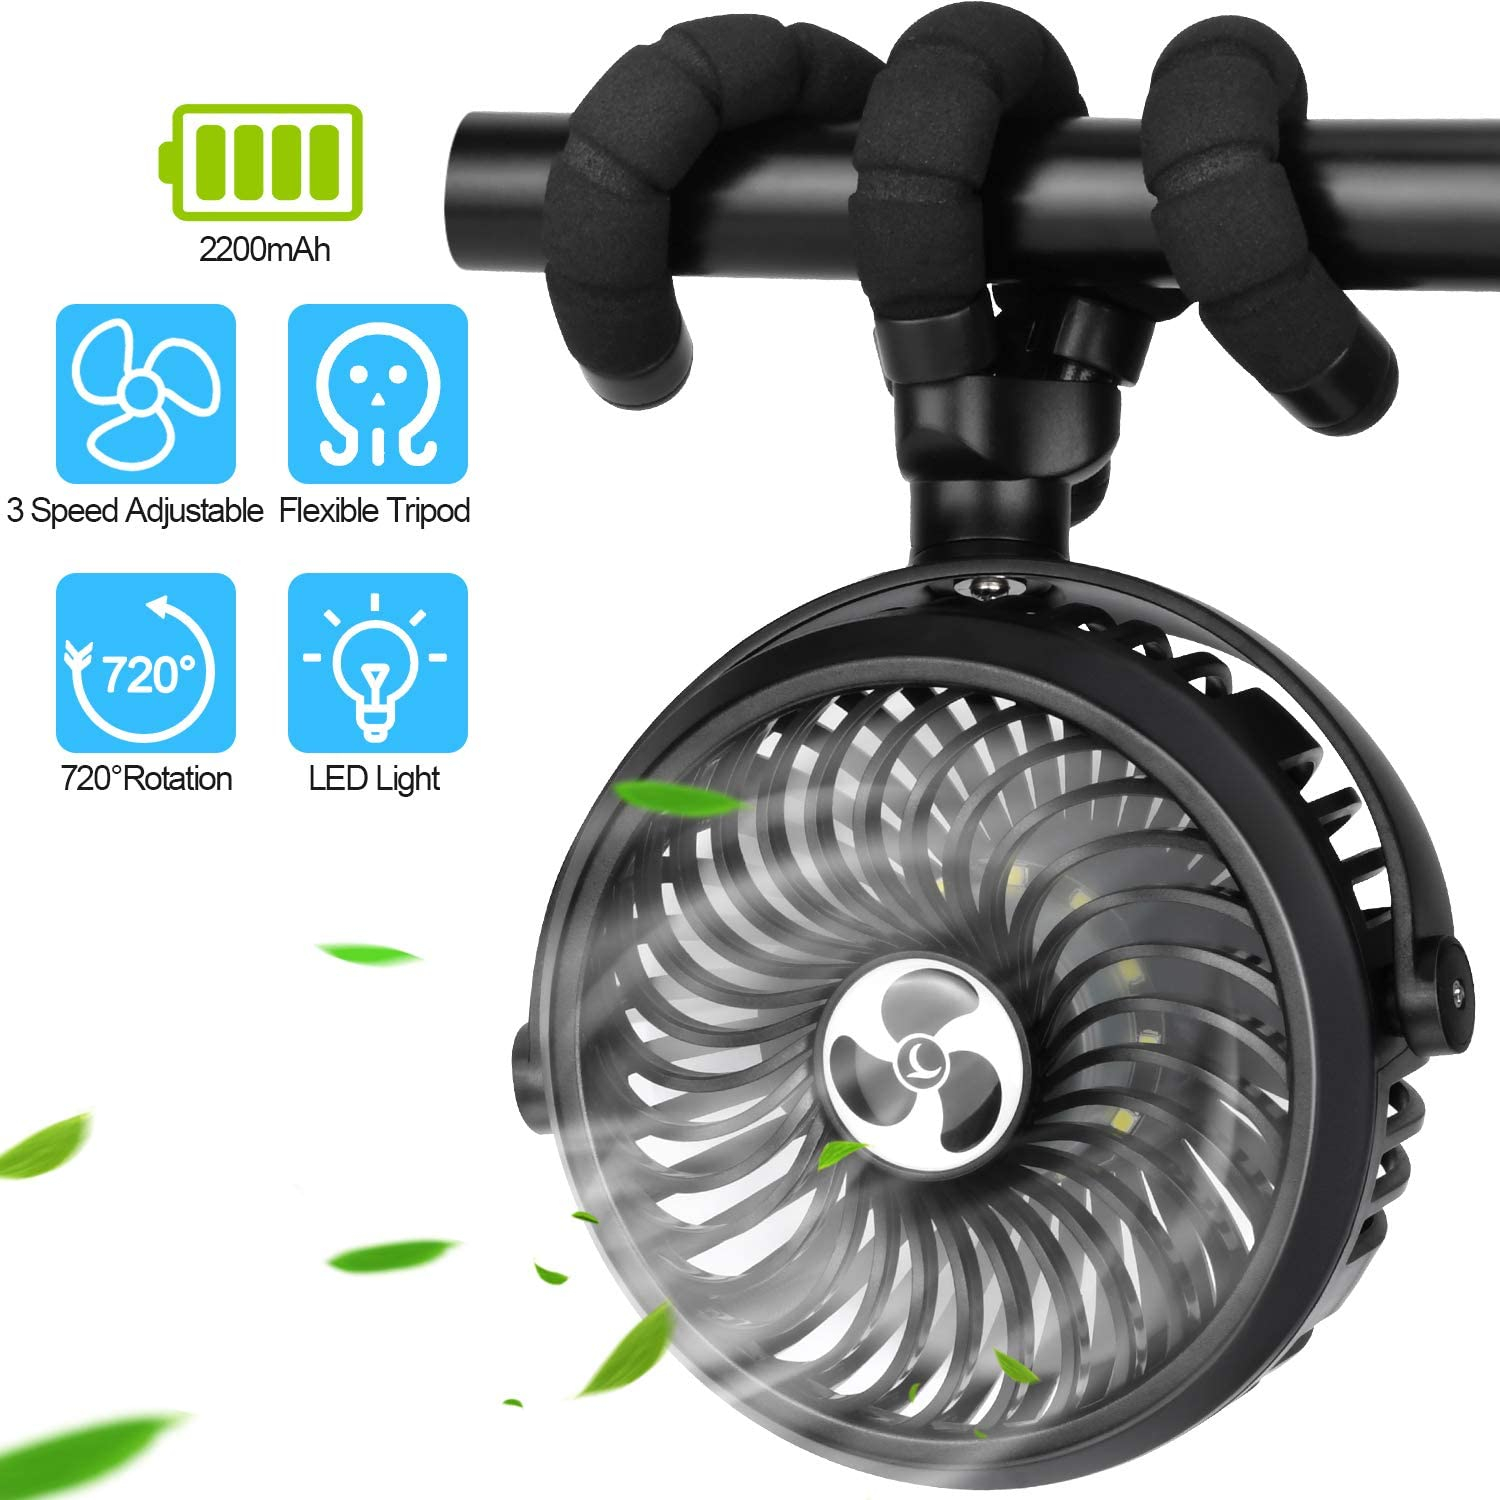 TDONE Stroller Fan Mini Portable Fan USB Personal Fan Long Working Handheld Fan 12pcs LED Camping Fan Batterry Operated Fan Clip on Fan for Stroller Travel